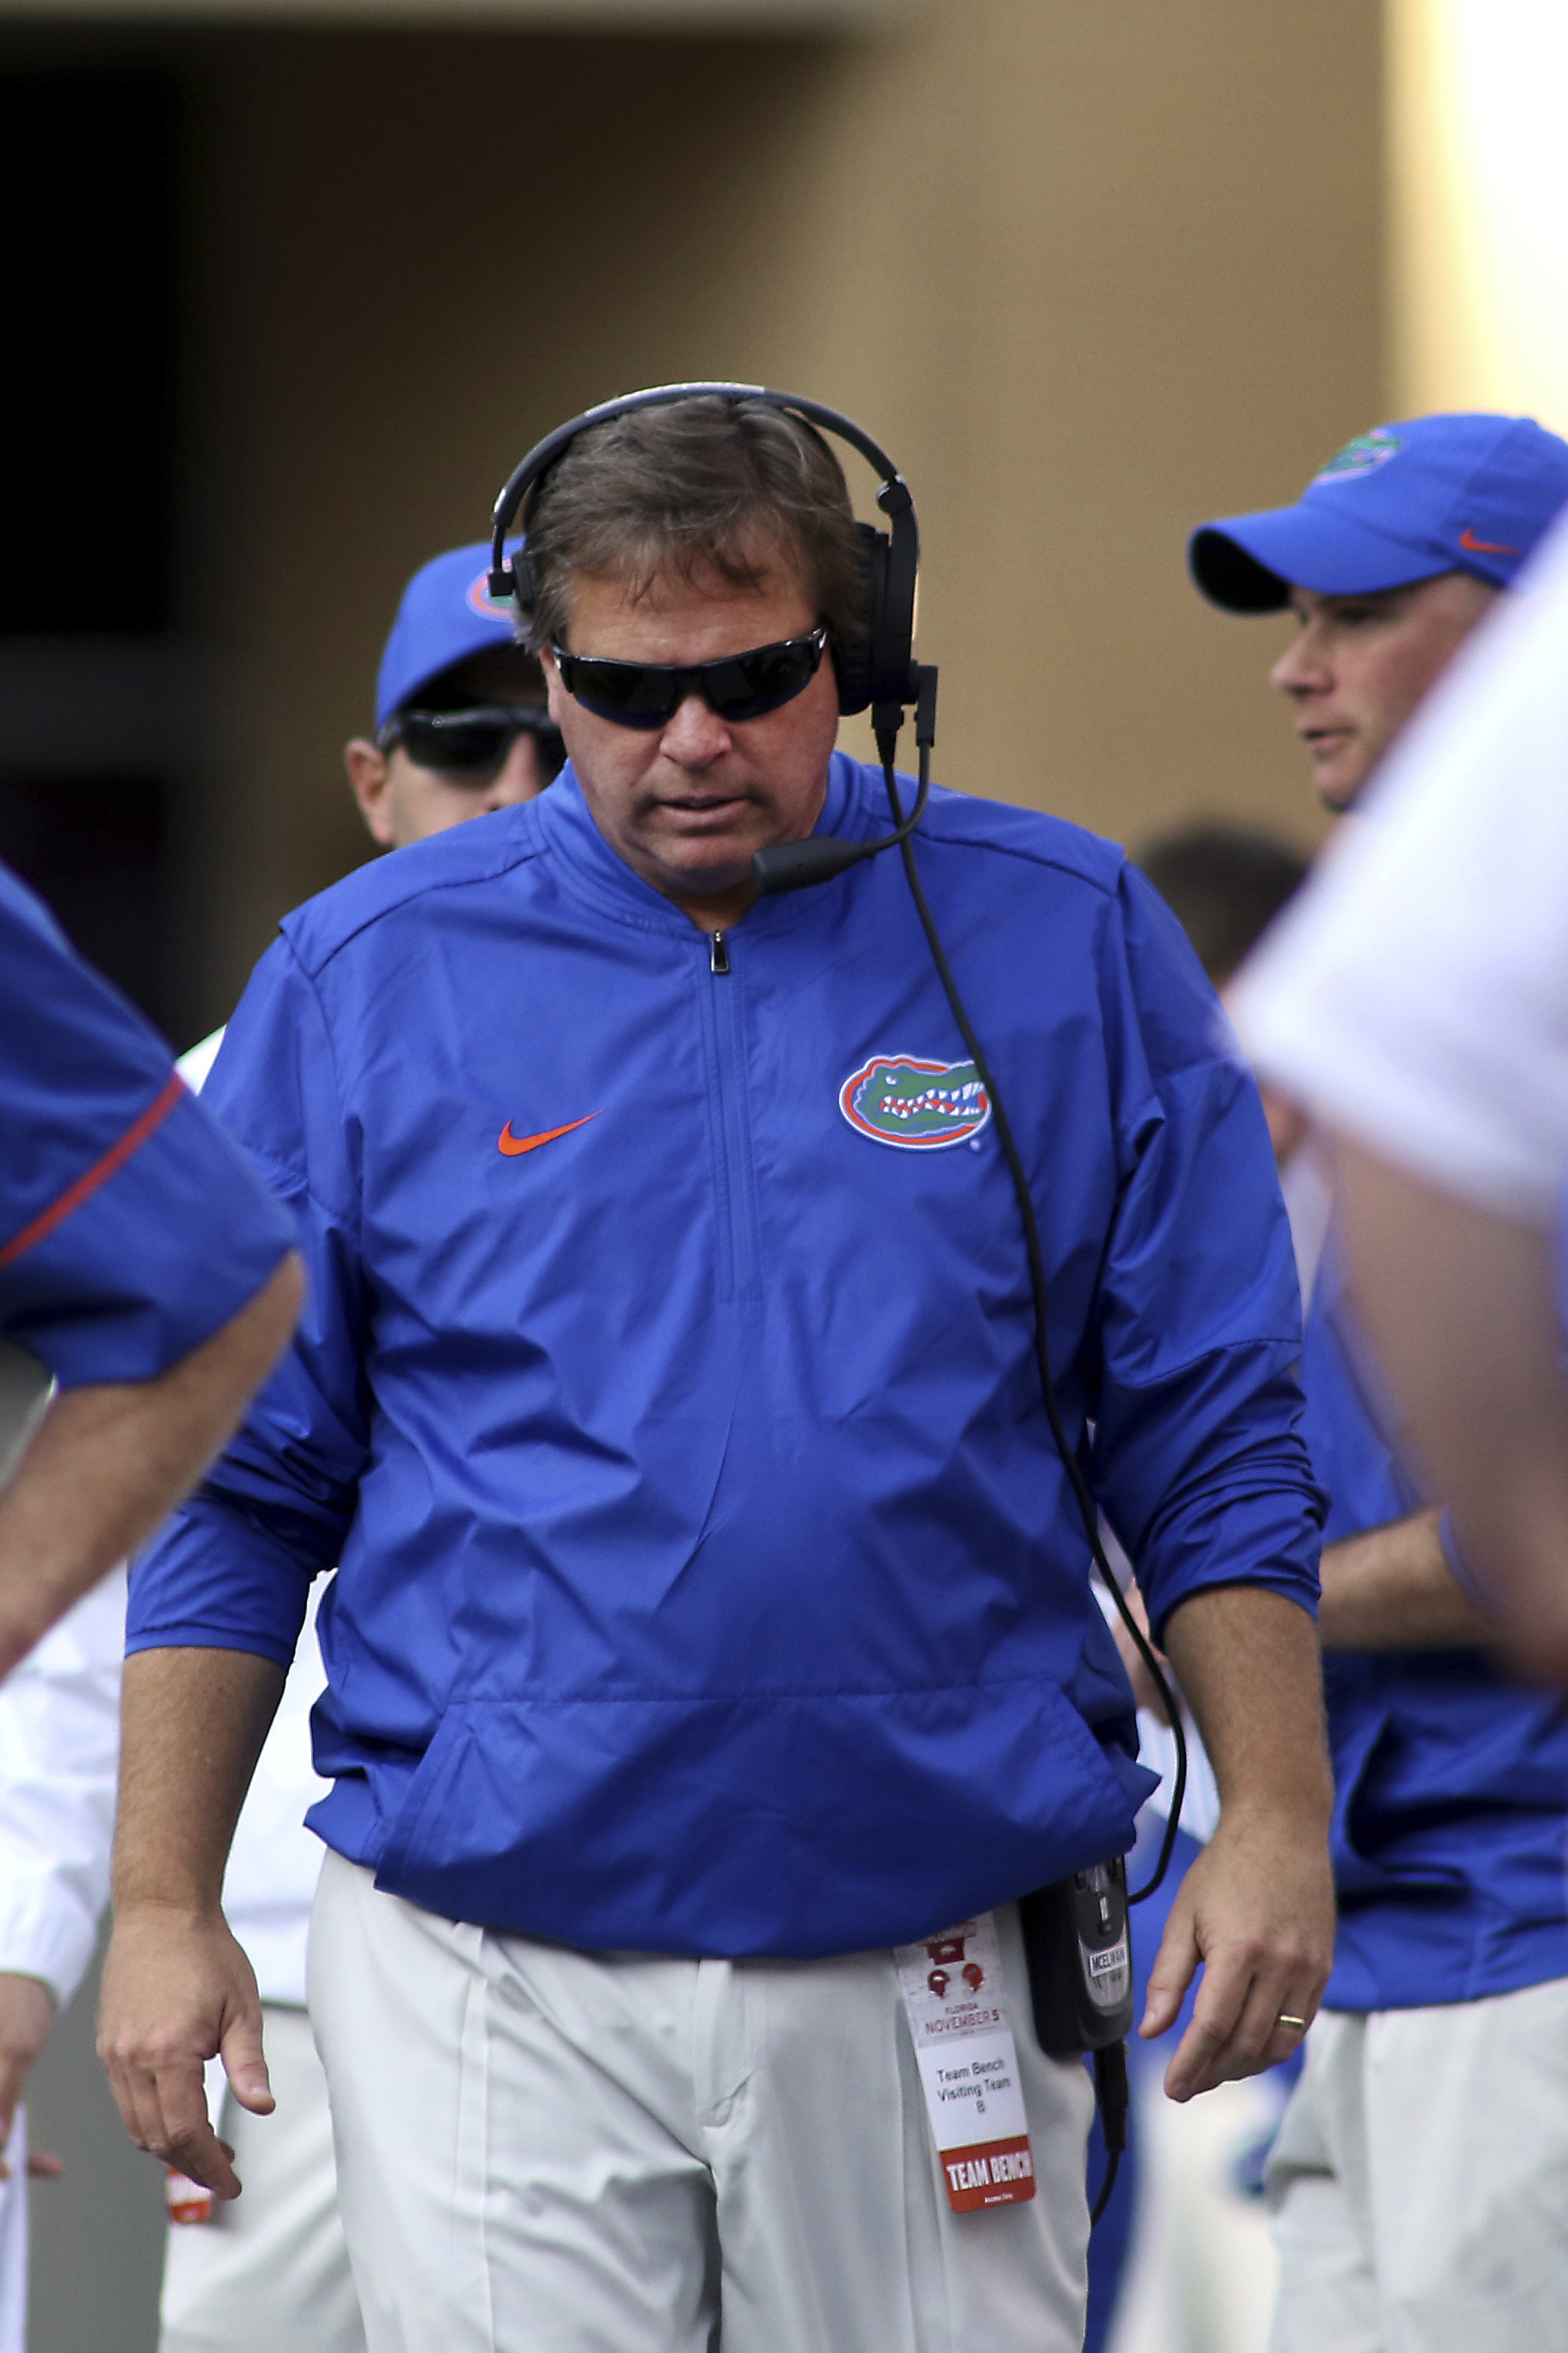 Florida's Jim McElwain paces the sideline during the second half of an NCAA college football game against Arkansas Saturday, Nov. 5, 2016 in Fayetteville, Ark. Arkansas beat Florida 31-10. (AP Photo/Samantha Baker)